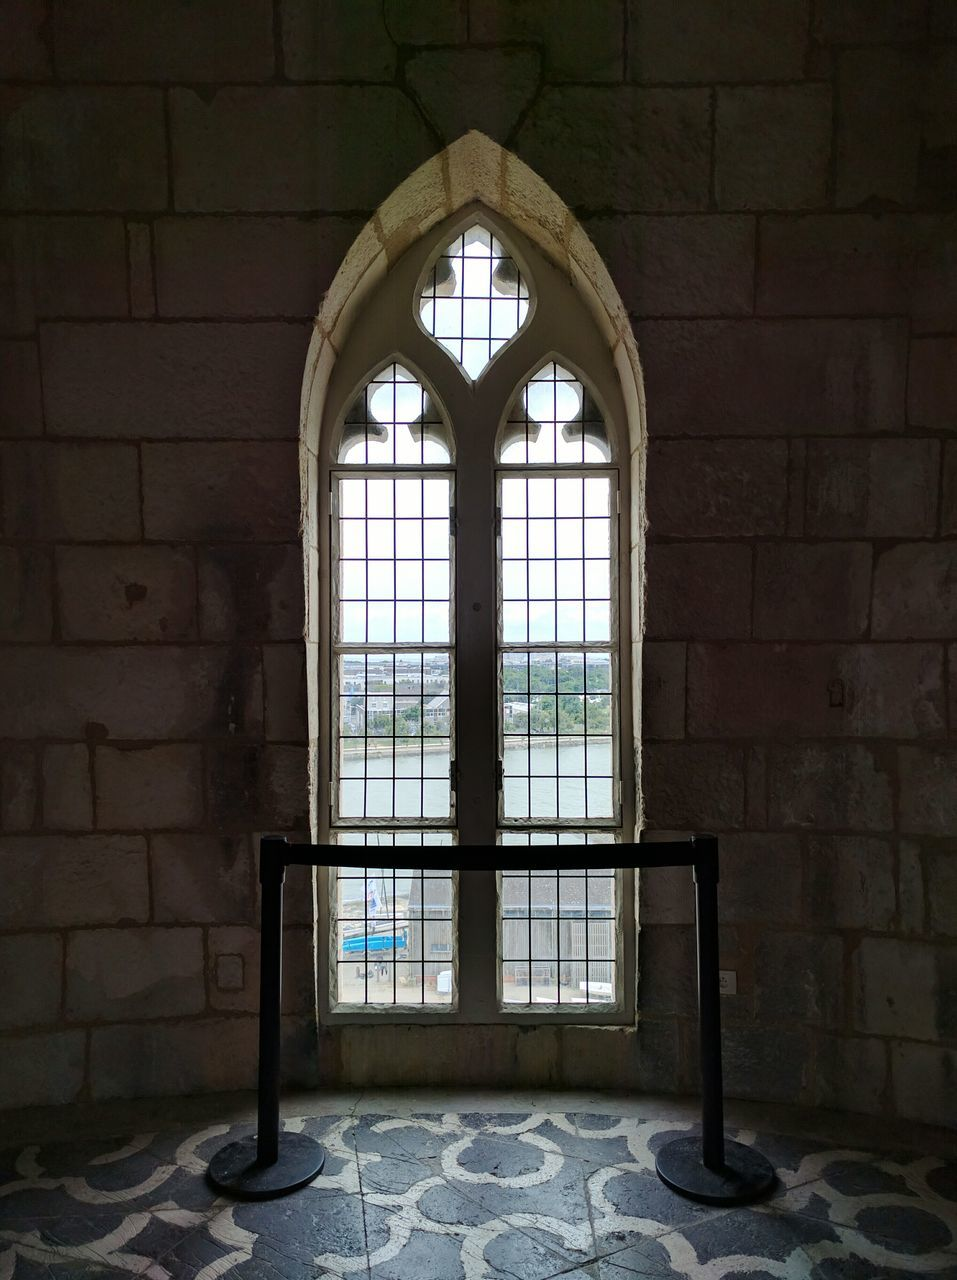 window, indoors, day, architecture, no people, built structure, arch, close-up